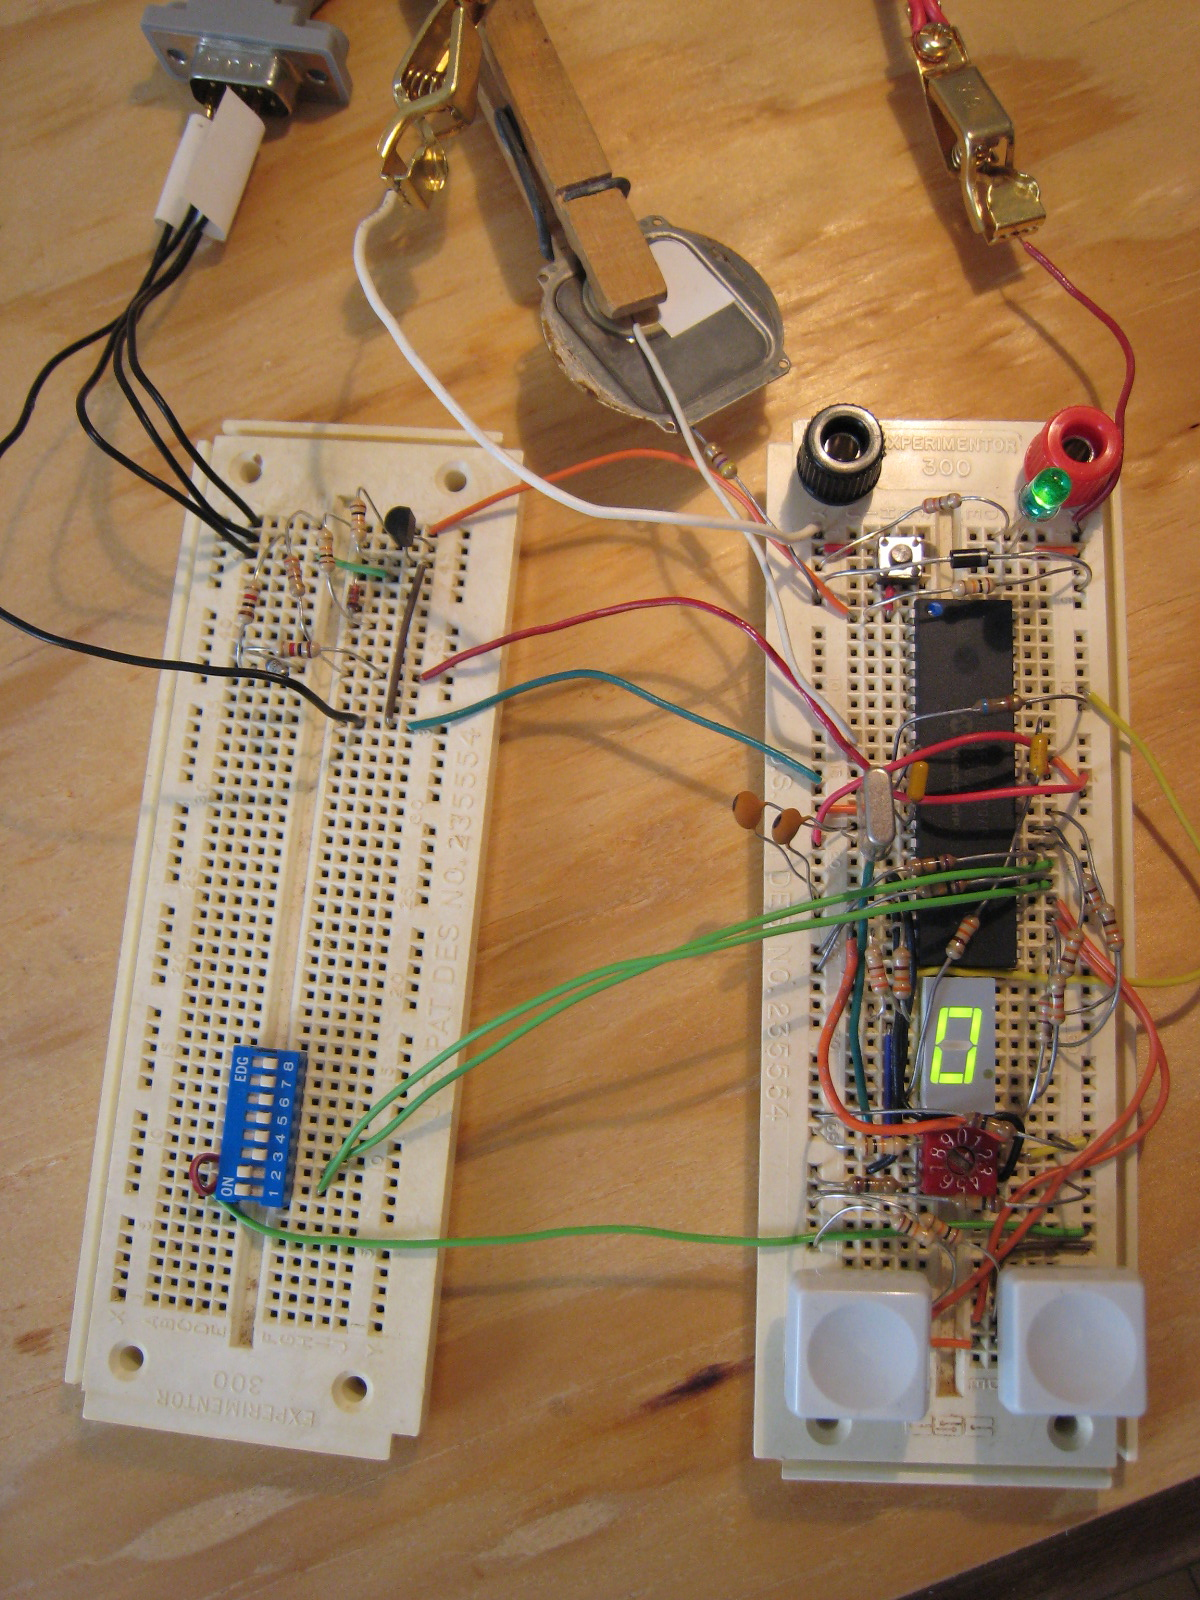 PIC16F877 Timer on the breadboard